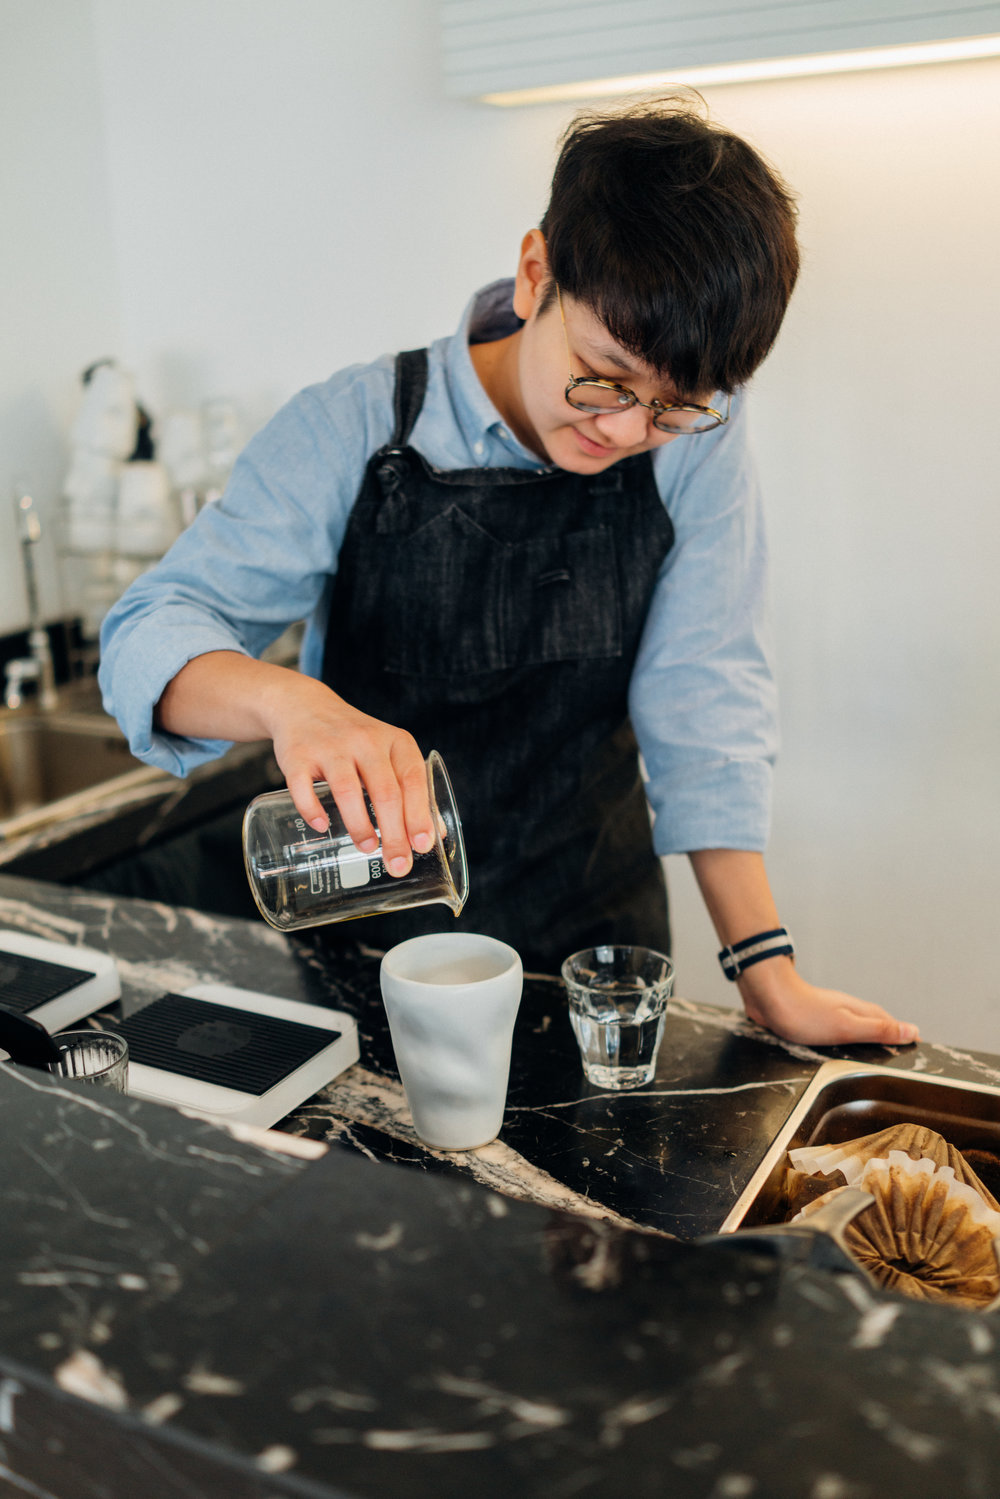 Pouring coffee at Hands and Heart